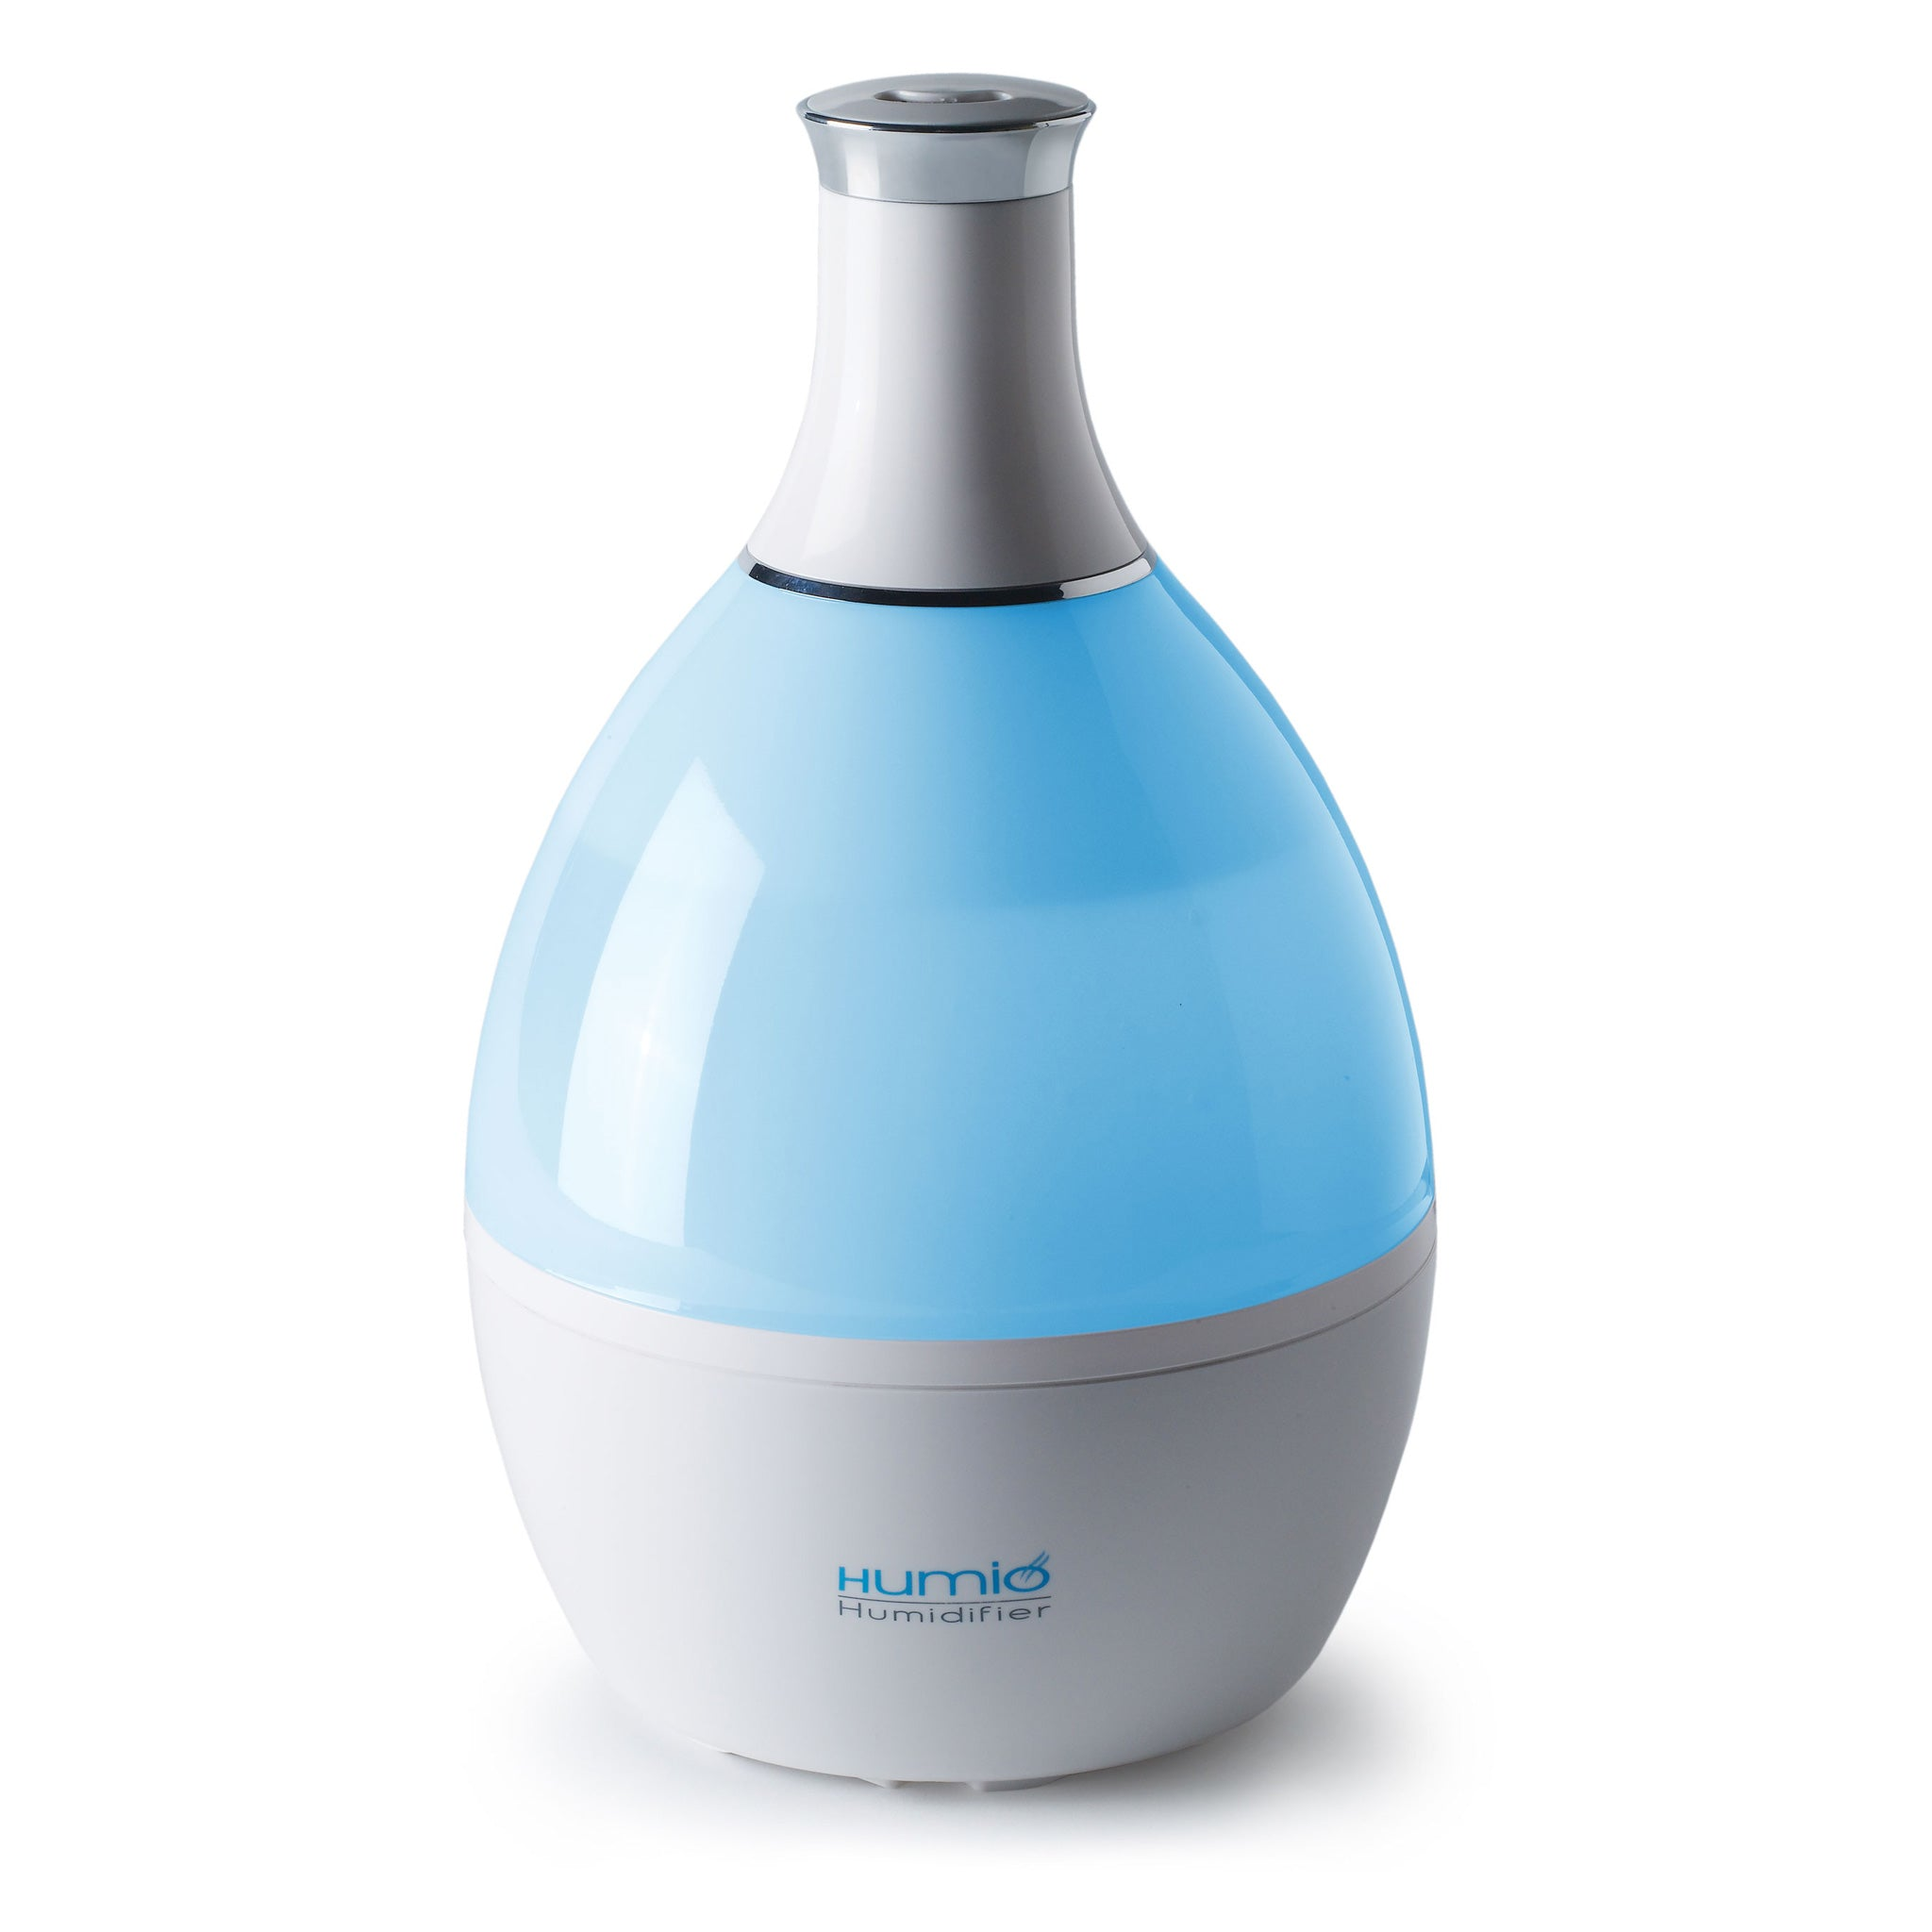 Humio Humidifier & Night Lamp with Aroma Oil Compartment HU-1020-A - Tribest